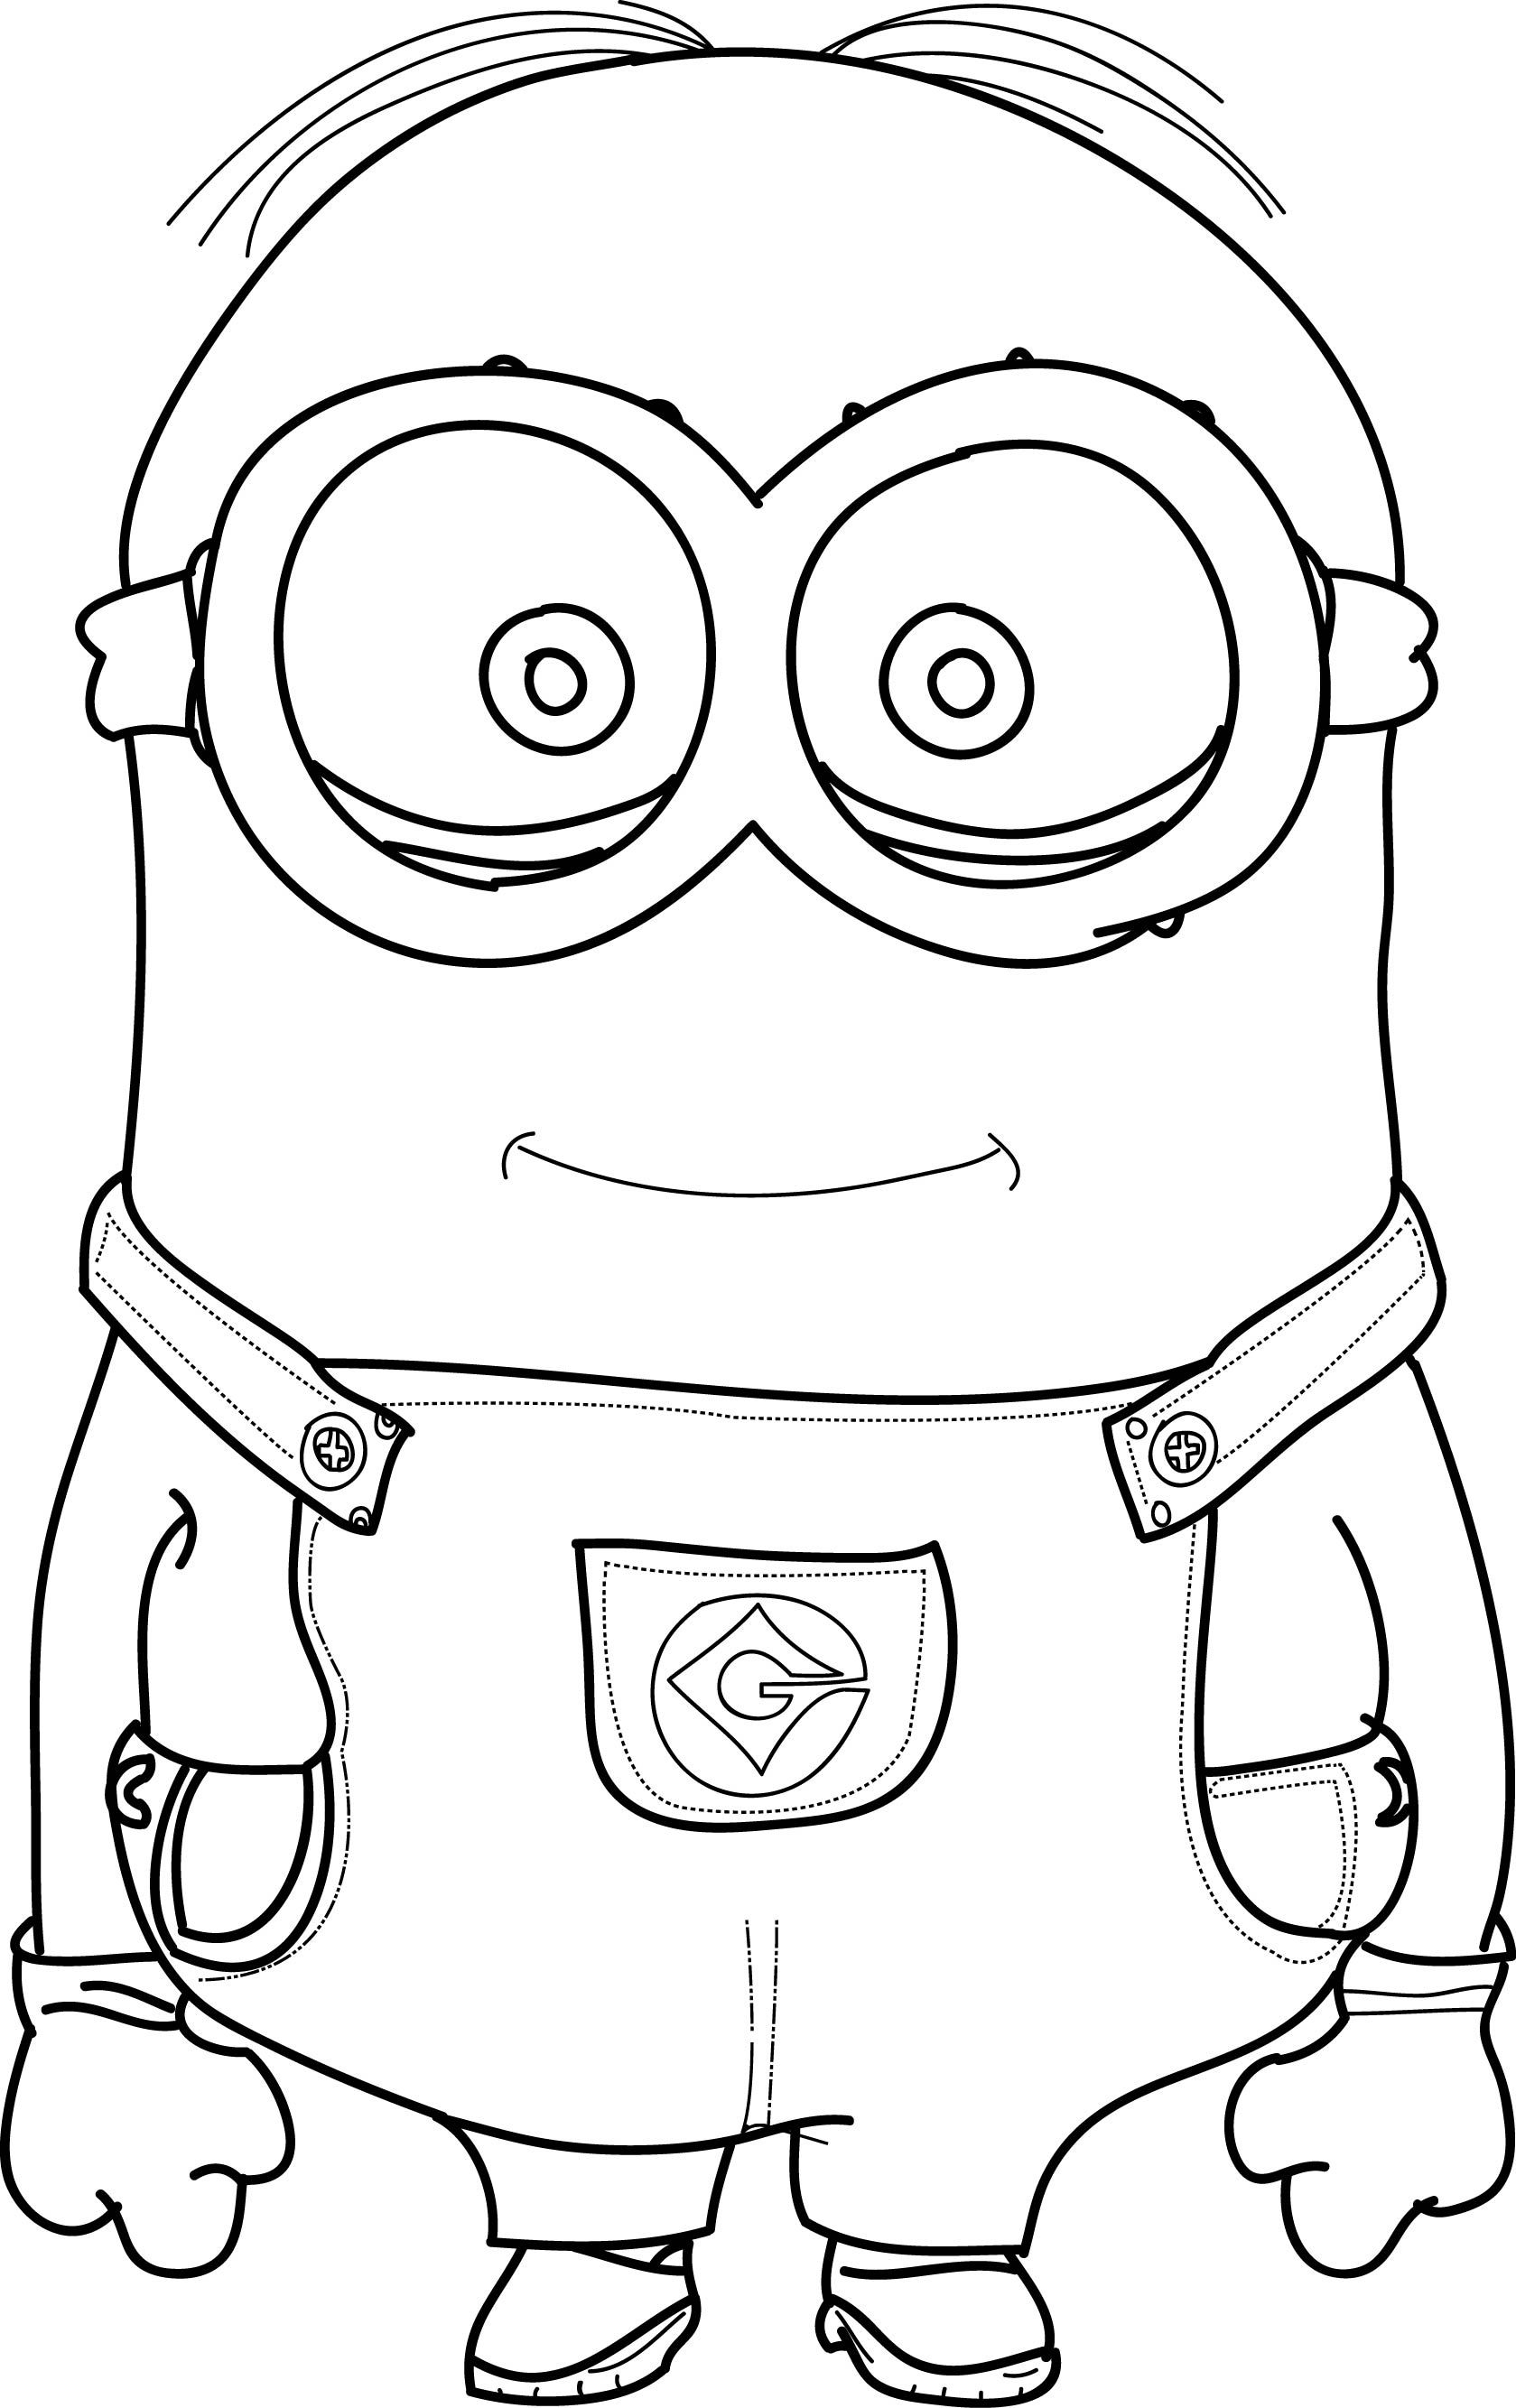 Minions Coloring Pages | wecoloringpage | Pinterest | Craft ...